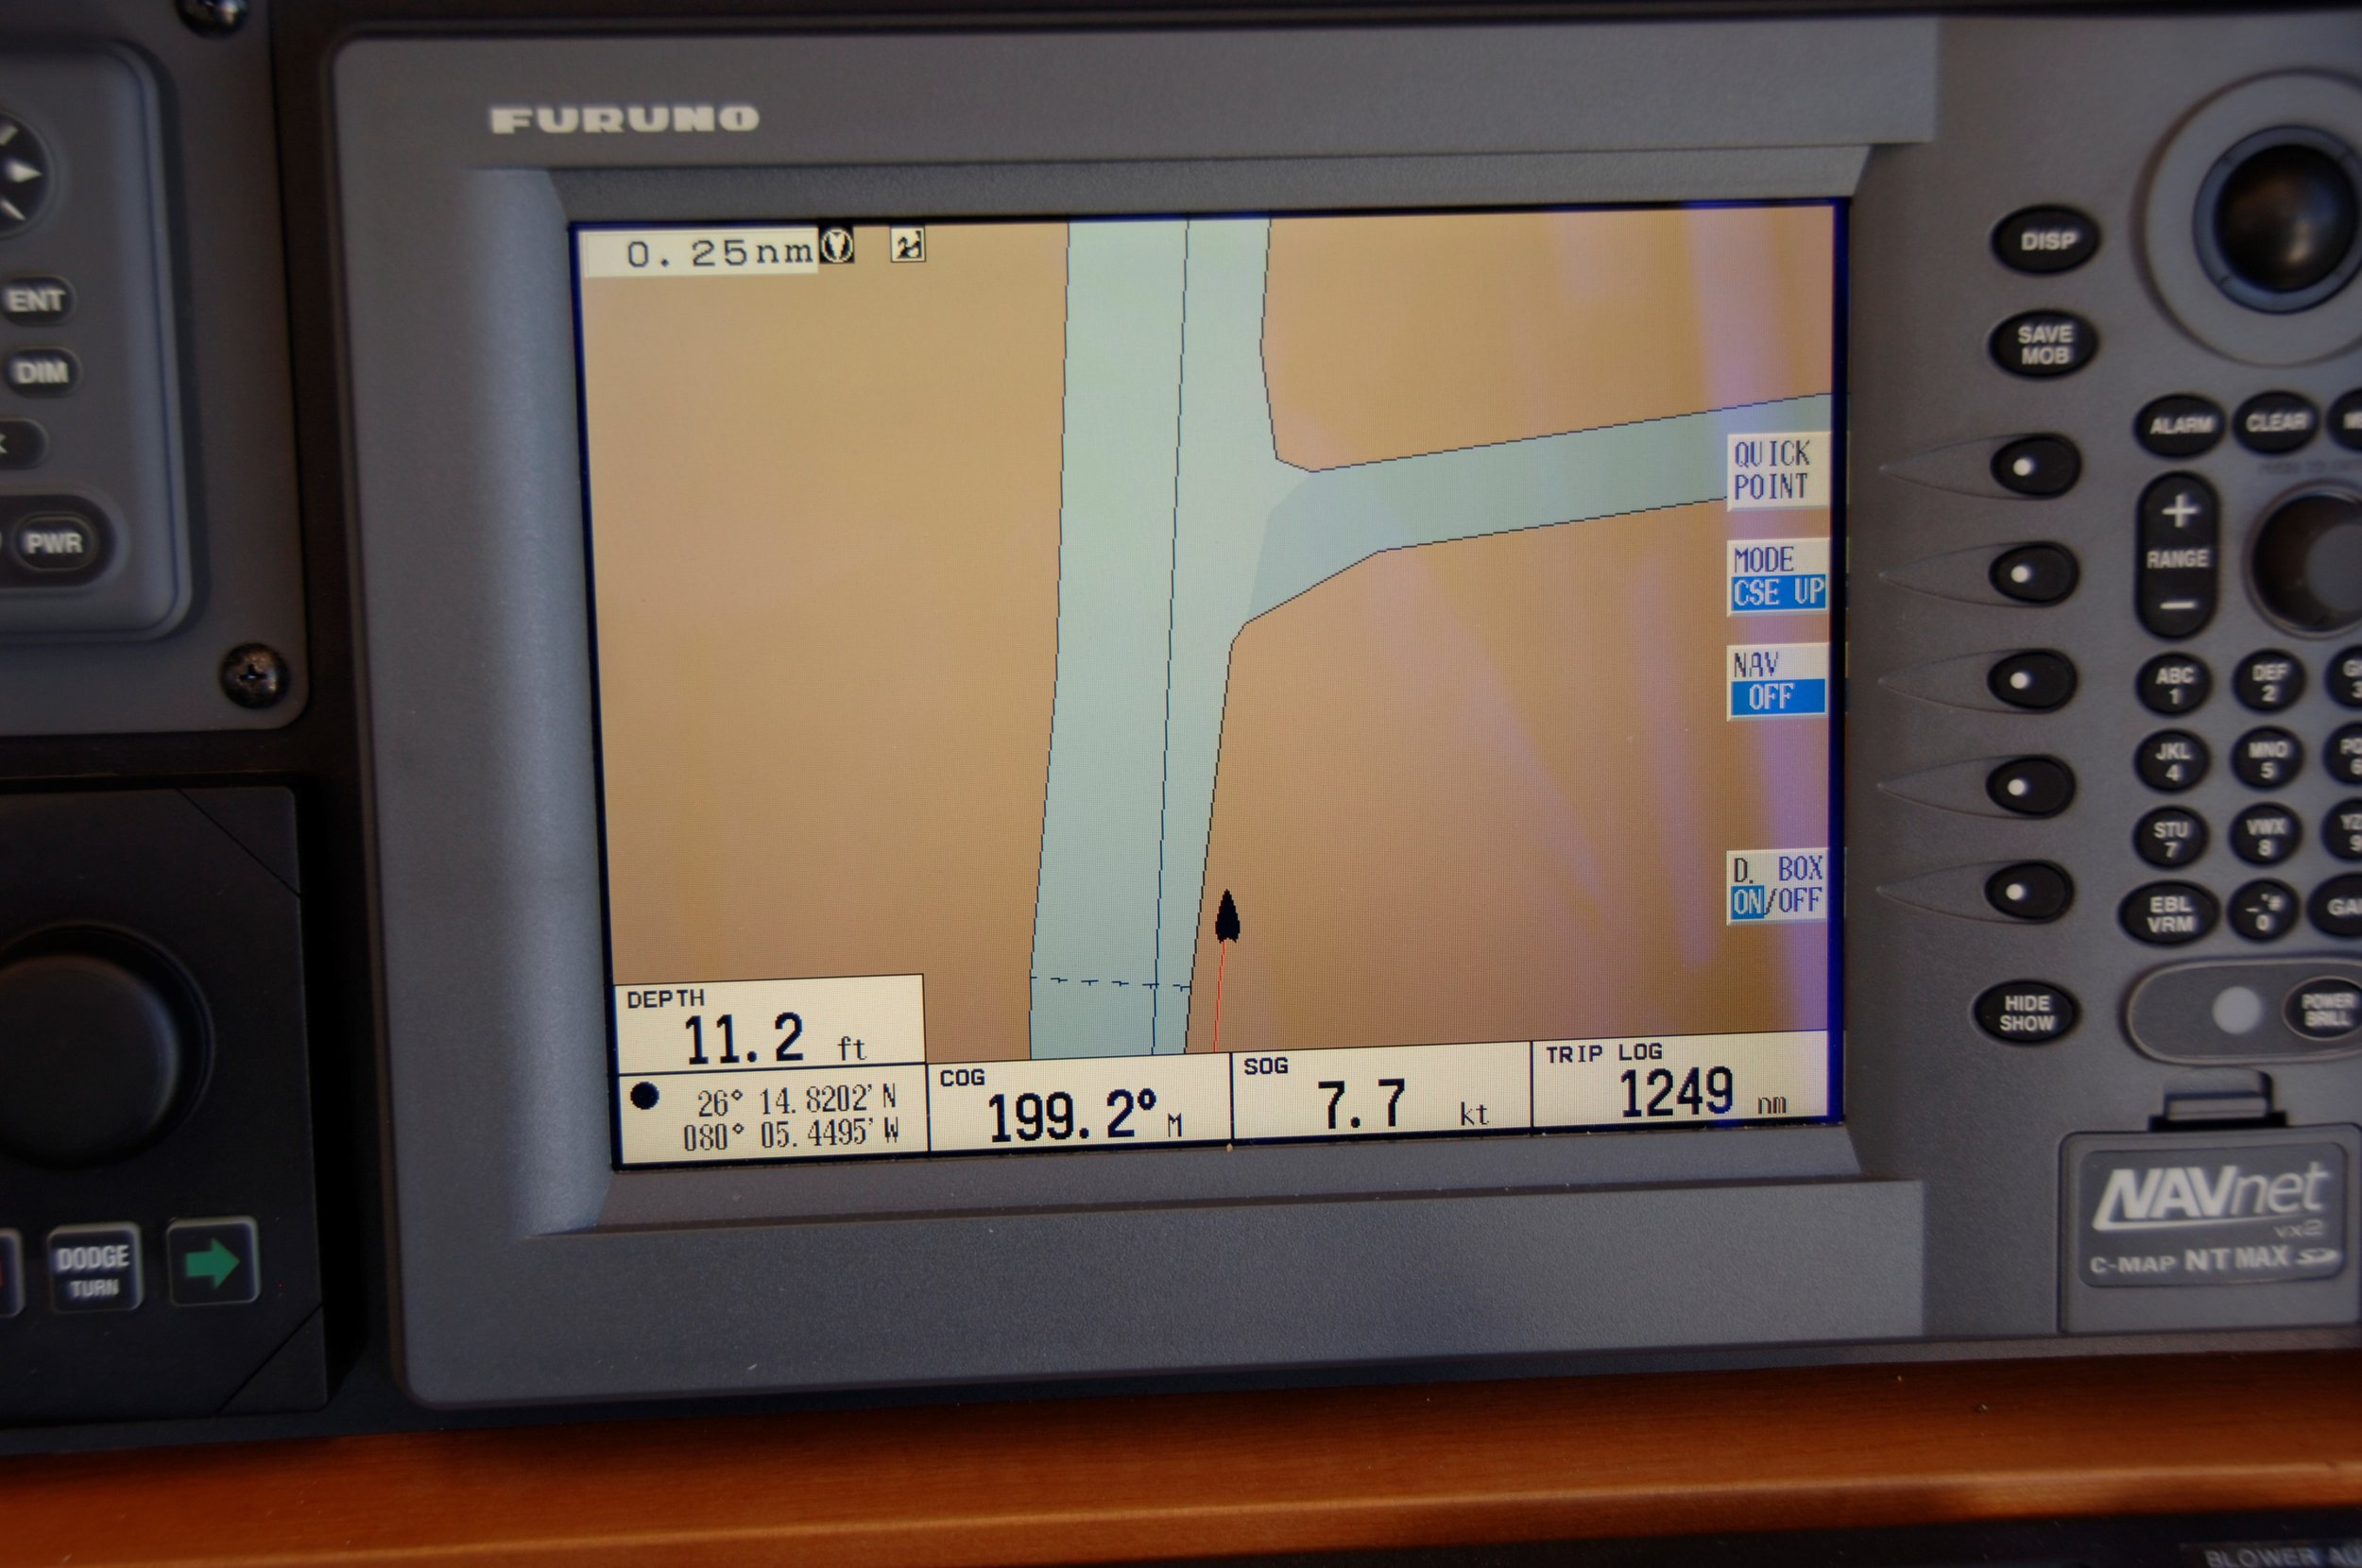 I include this screen shot of my Furuno plotter on  Growler  while running down the ICW near Miami. It is a great example of why one should NEVER rely on a single navigation device or app. Is the chart wrong or the GPS?